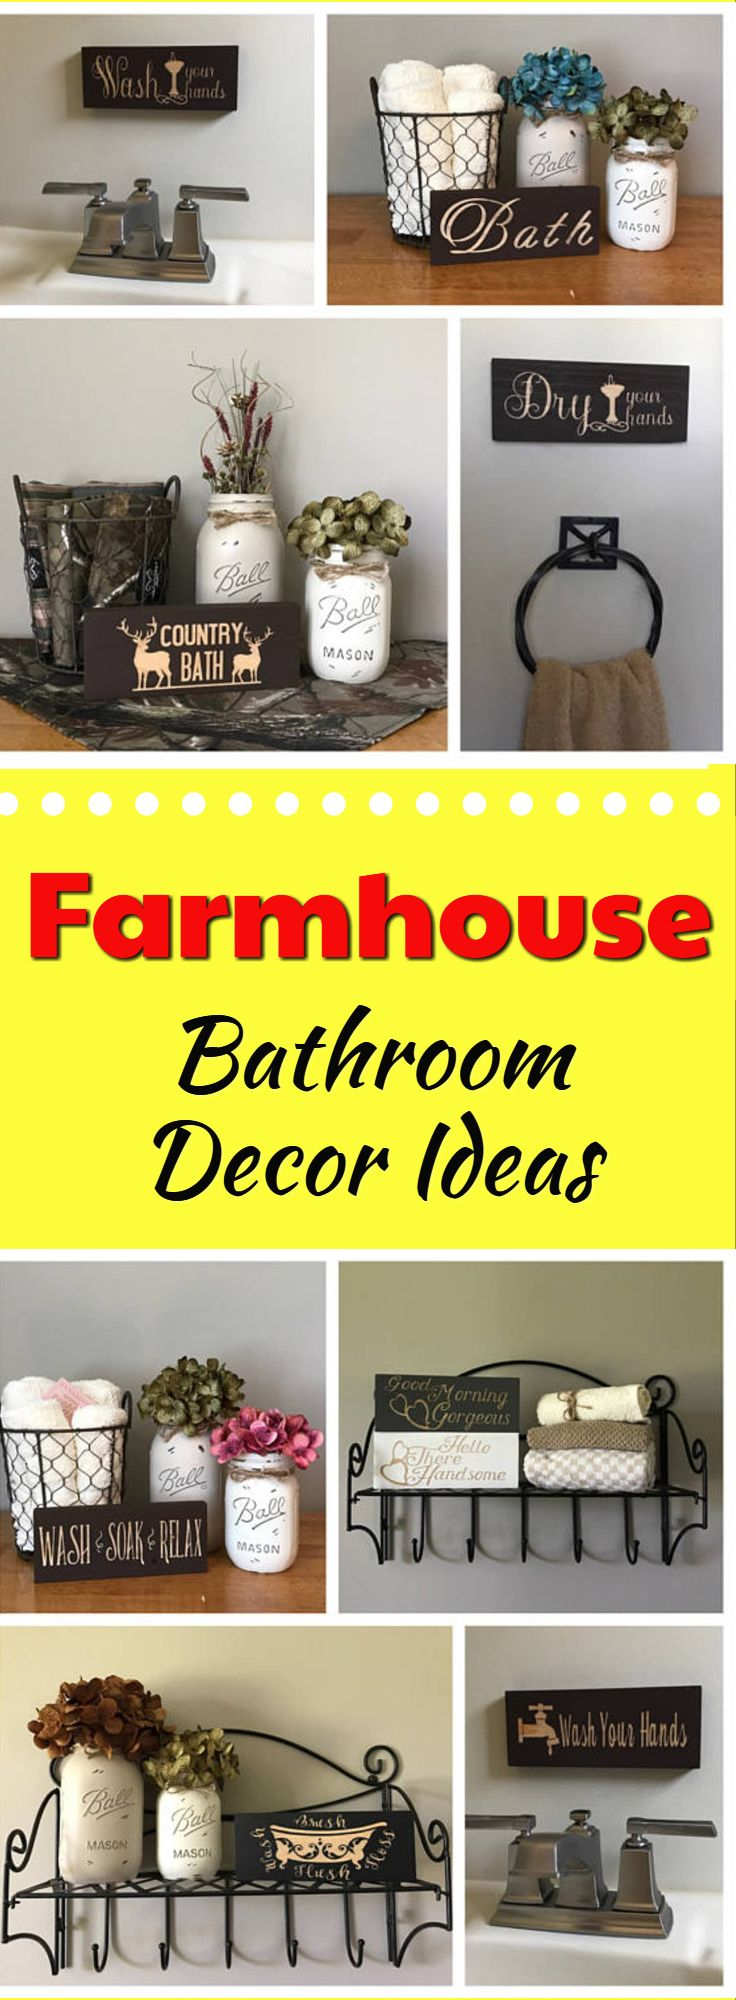 Look at these simple farmhouse decor ideas and signs! Bathroom Sign, Bathroom Decor, Bath Sign, Wood Block Sign, Bathroom Shelf Sign, Powder Room Sign, Mini Wood Sign, Rustic Farmhouse Decor #farmhouse #ad #bathroomsigns